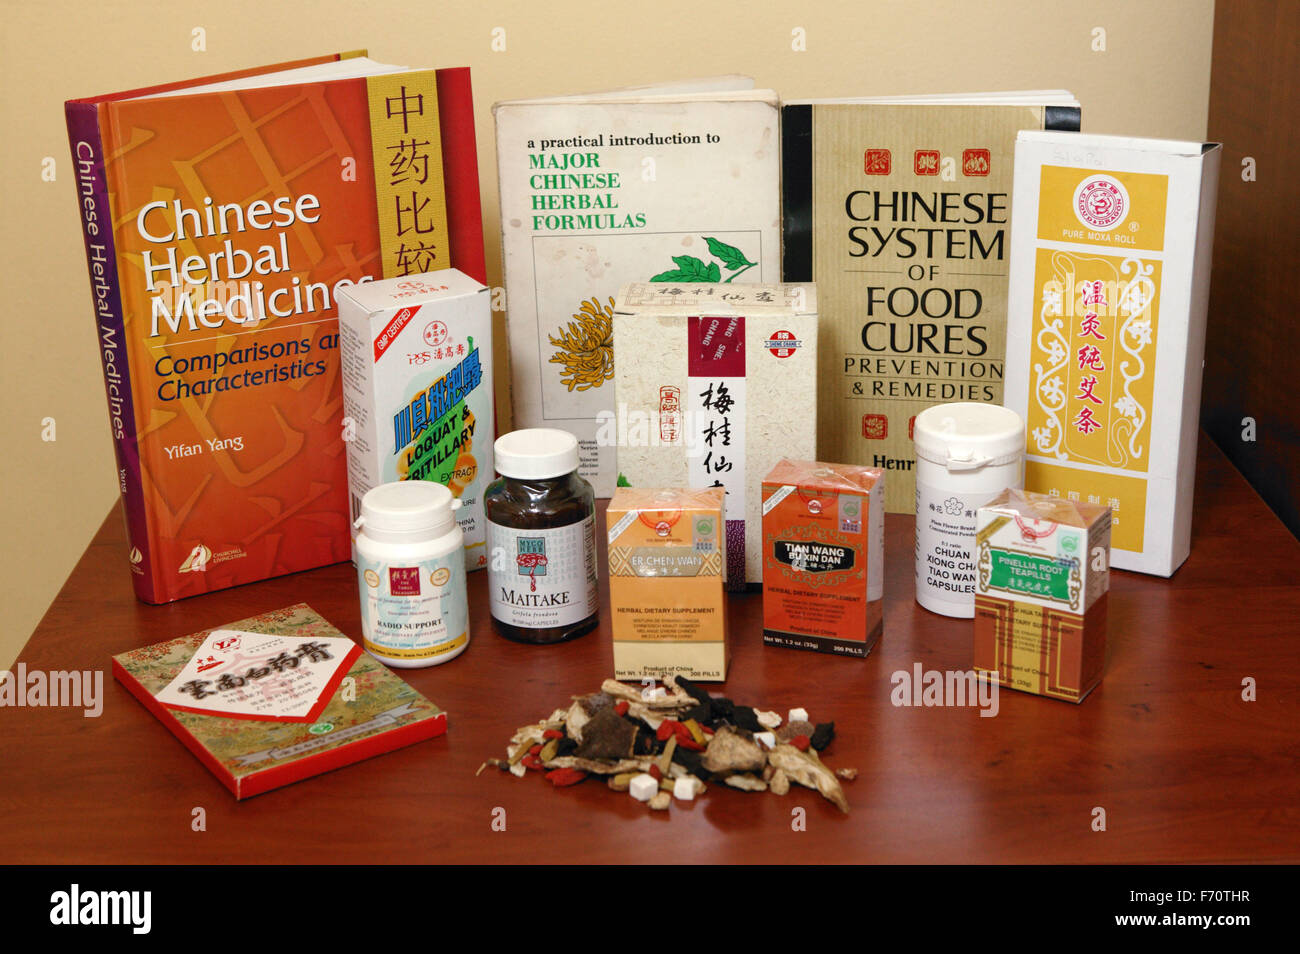 Chinese herbal products - Selection Of Chinese Herbal Medicine Books And Products